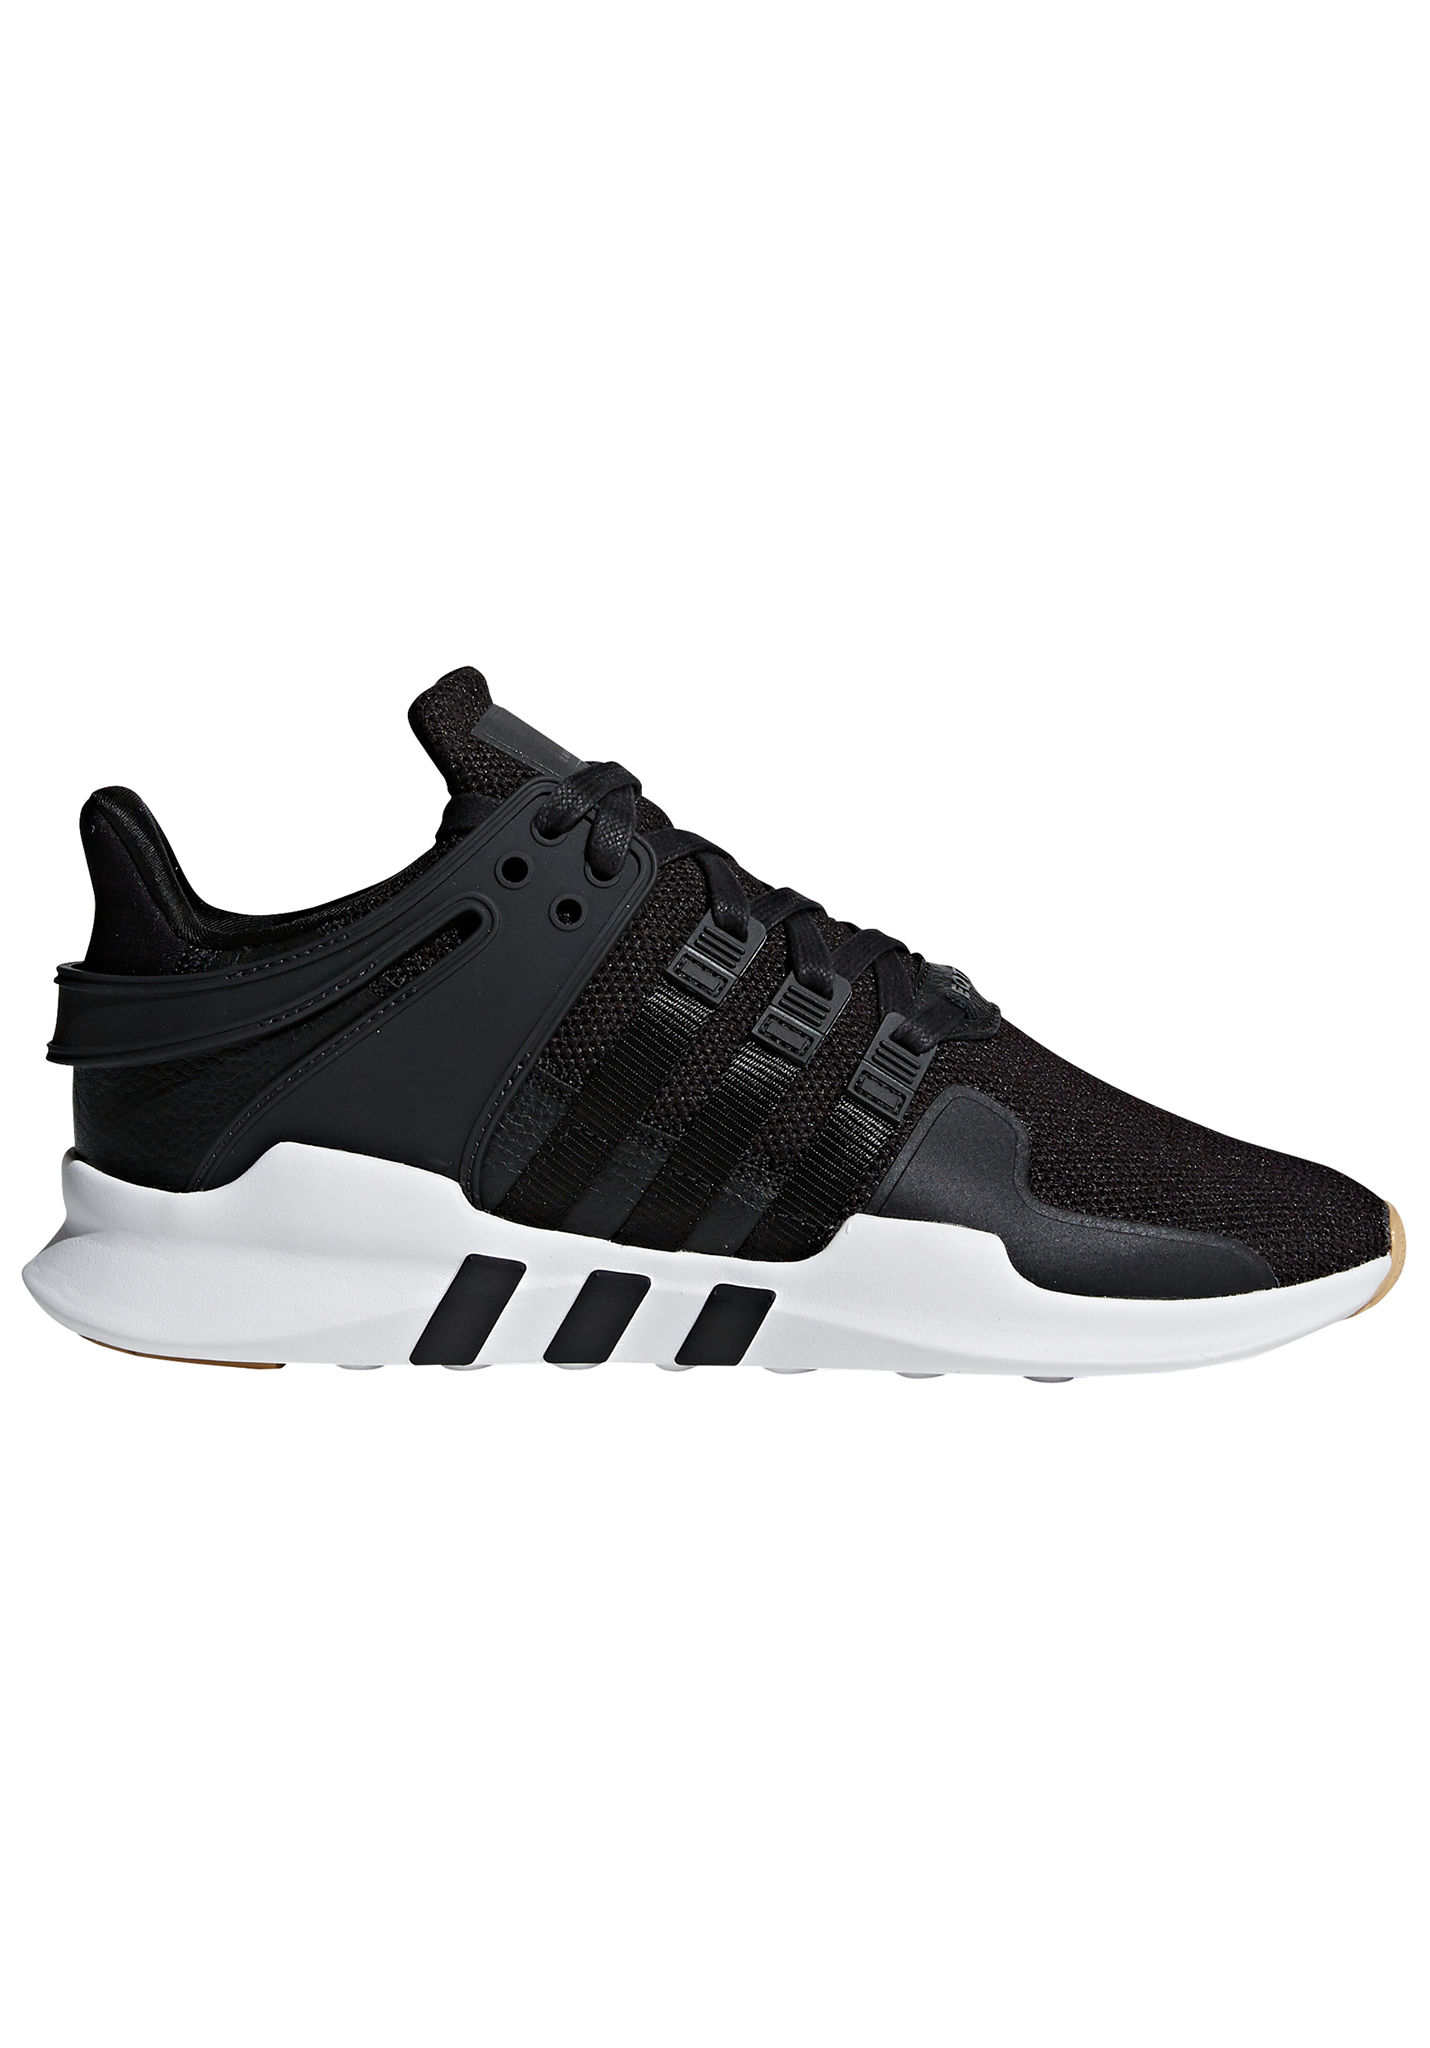 356213ea8d77 ADIDAS ORIGINALS EQT Support ADV - Sneakers for Men - Black - Planet Sports